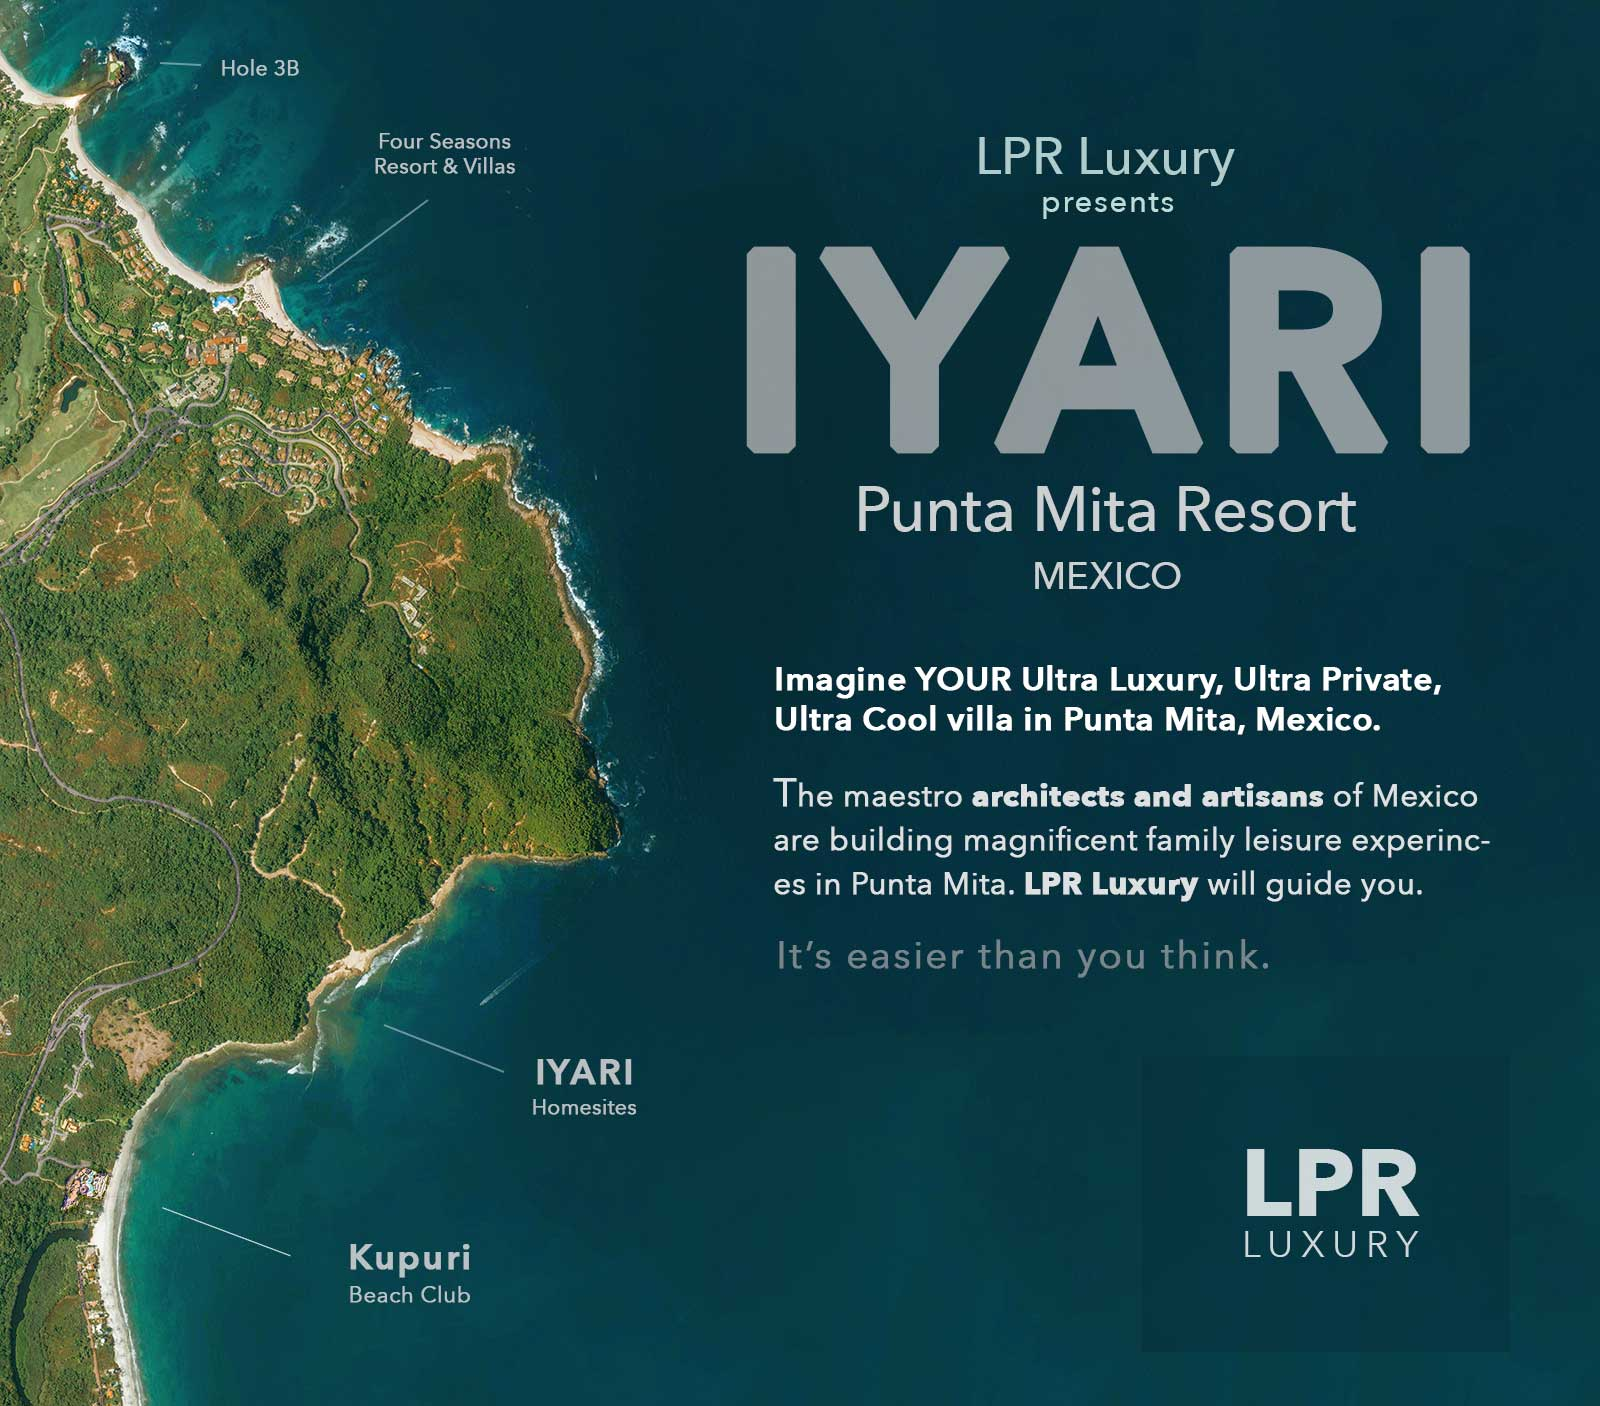 Iyari Punta Mita - Luxury Real Estate at the Punta Mita Resort, Mexico